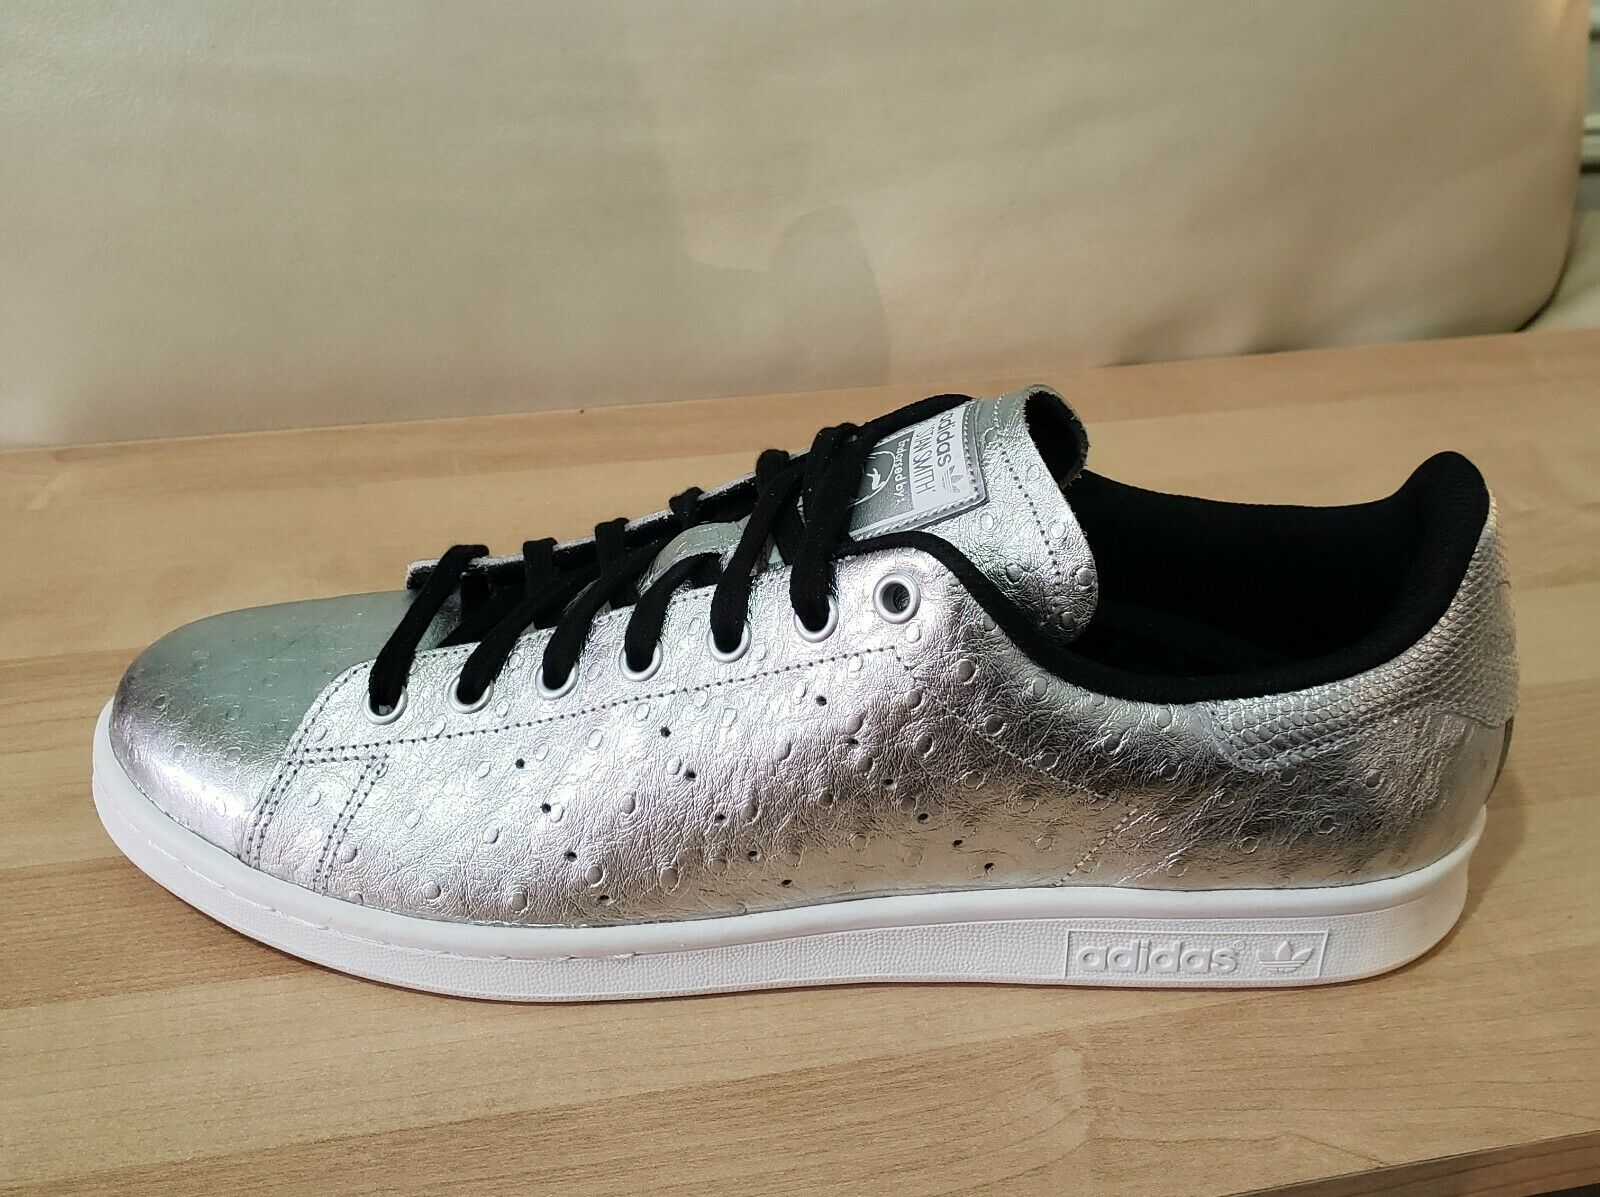 Mens ADIDAS Originals STAN SMITH Metallic Silver sz 13 shoes Ostrich embossed